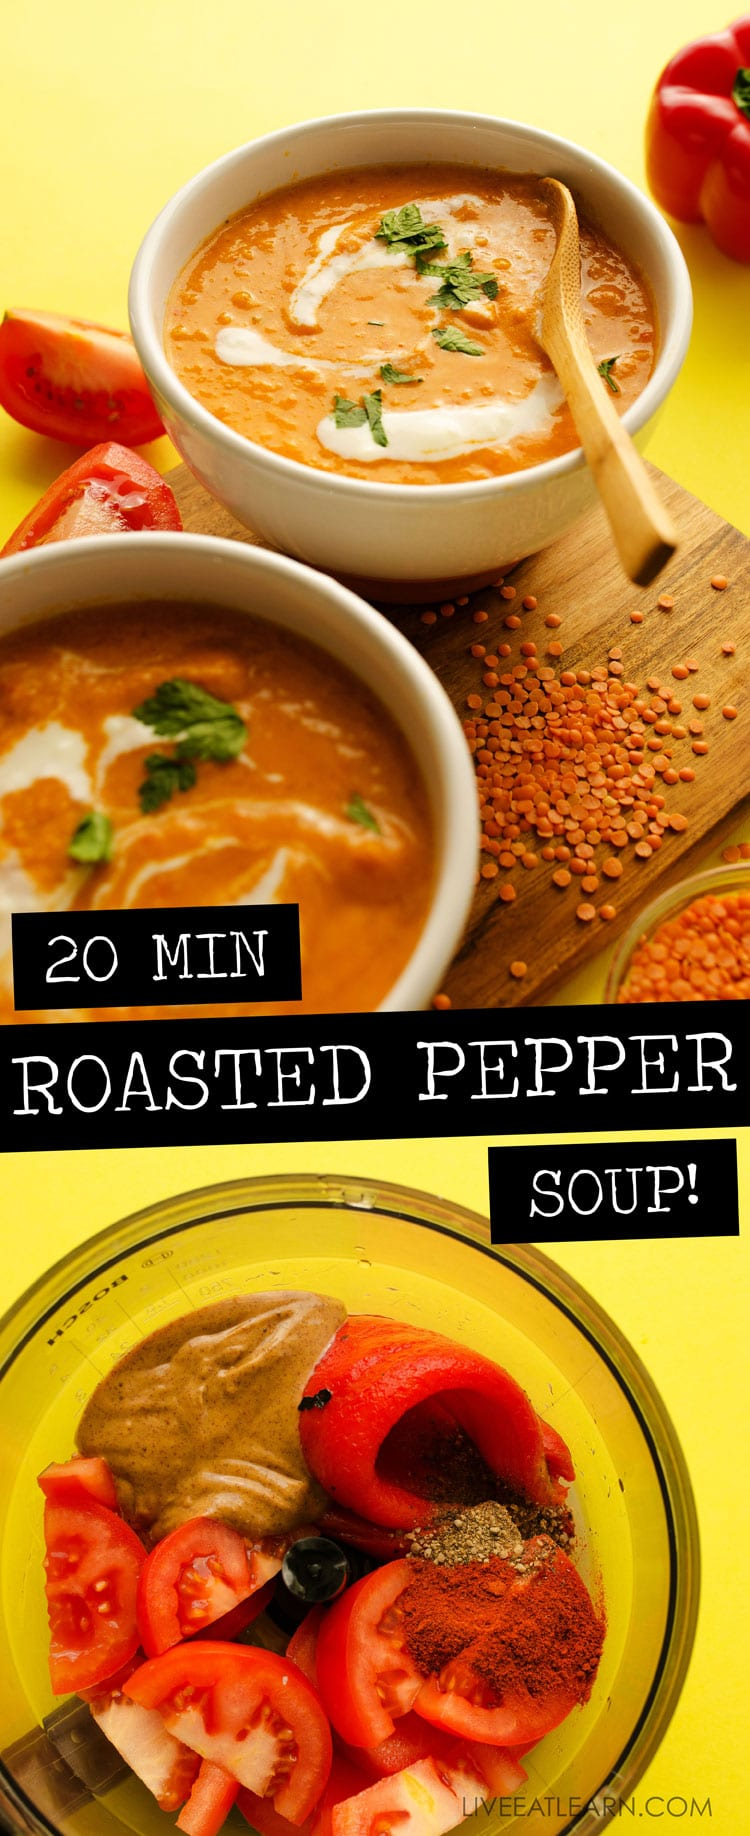 This Roasted Red Pepper Soup recipe draws inspiration from the delicious Spanish pepper sauce, romesco! With smoky roasted peppers, juicy Roma tomatoes, and a dollop of almond butter, this is a creamy soup that gets a delicious dinner on the table (in under 15 minutes!) #easydinner #vegan #vegetarian #glutenfree #soup